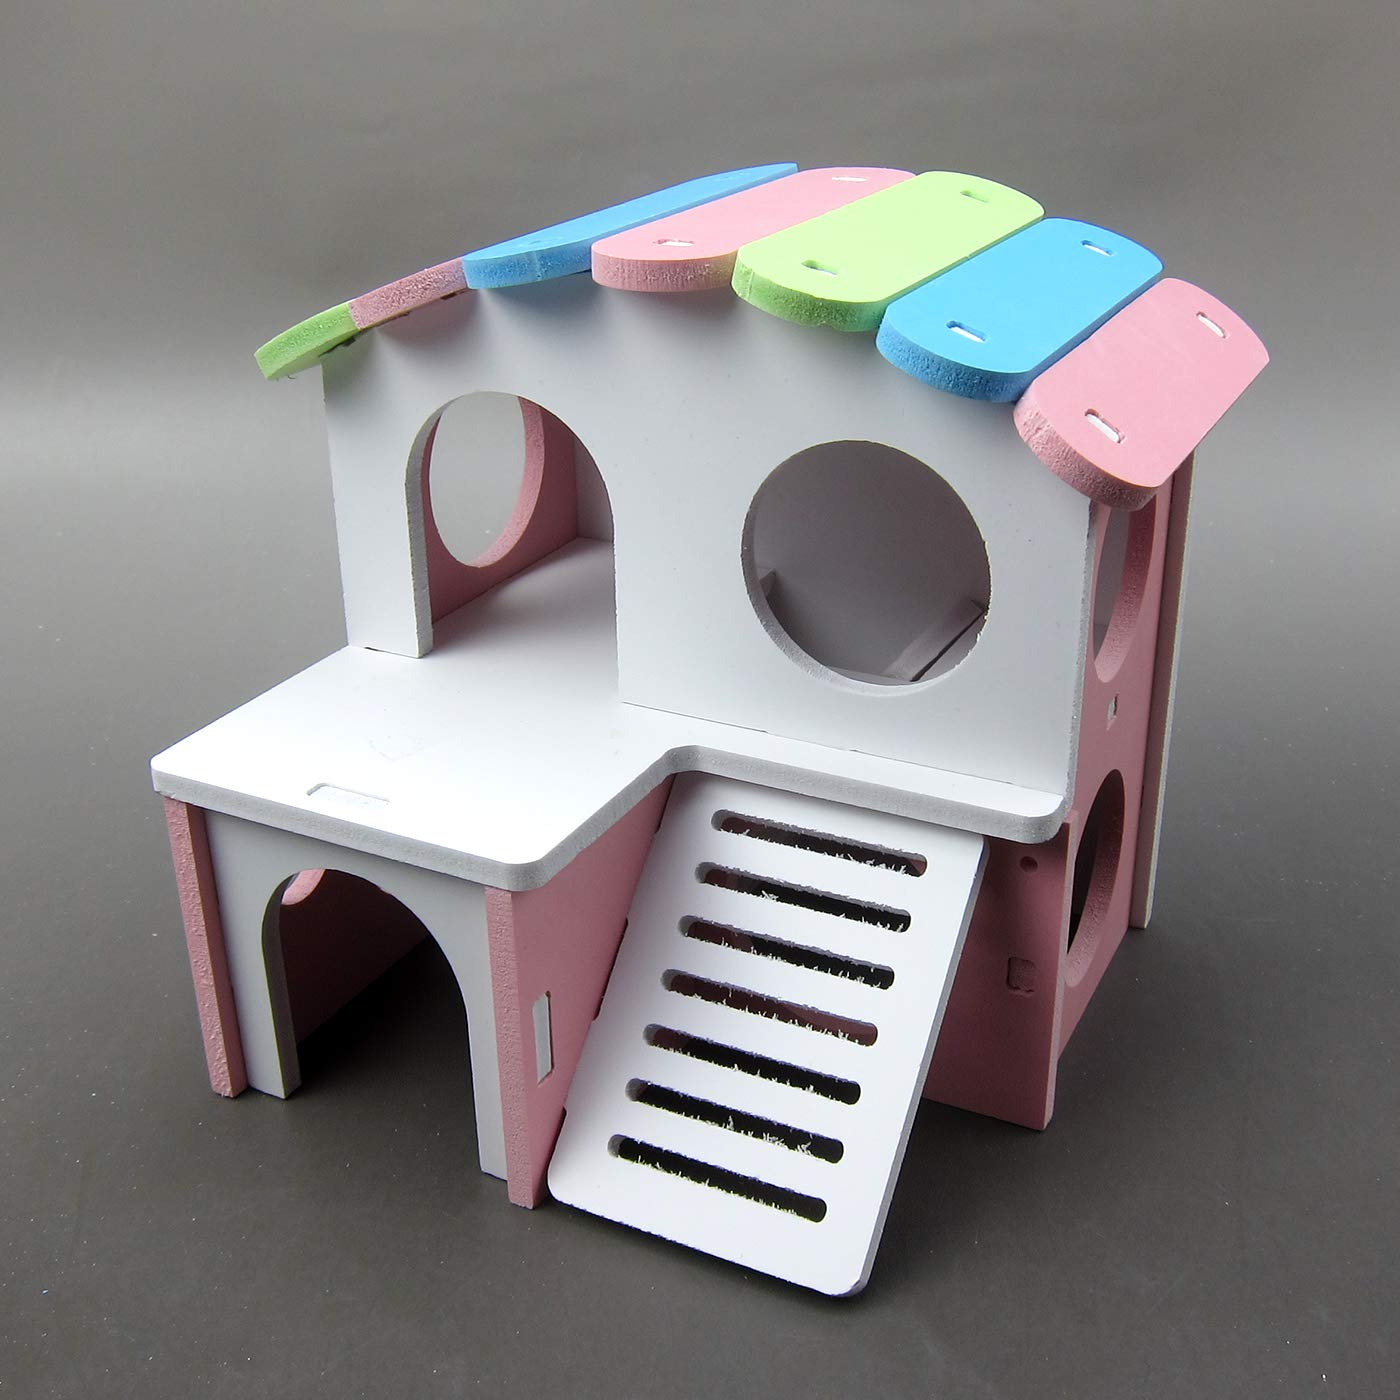 Alfie Pet Petoga Couture Corin Hideout Hut Small Animals Like Dwarf Hamster Mouse